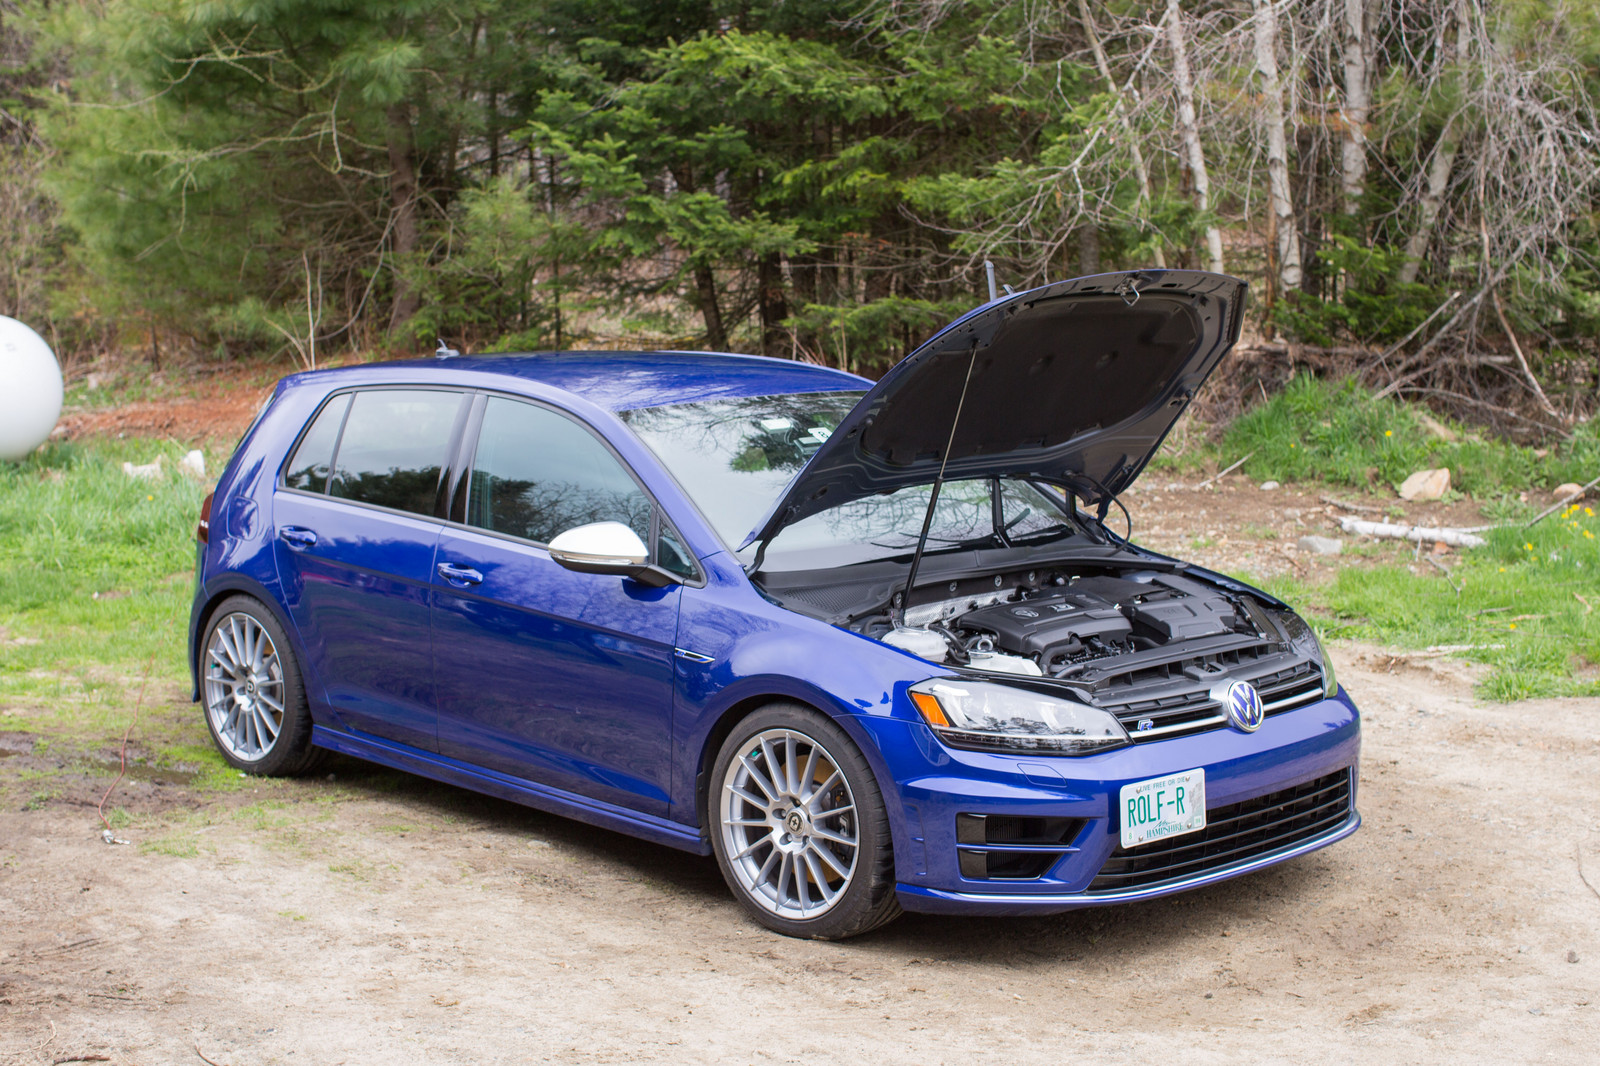 2016 volkswagen golf r dsg dcc 1 4 mile drag racing timeslip specs 0 60. Black Bedroom Furniture Sets. Home Design Ideas